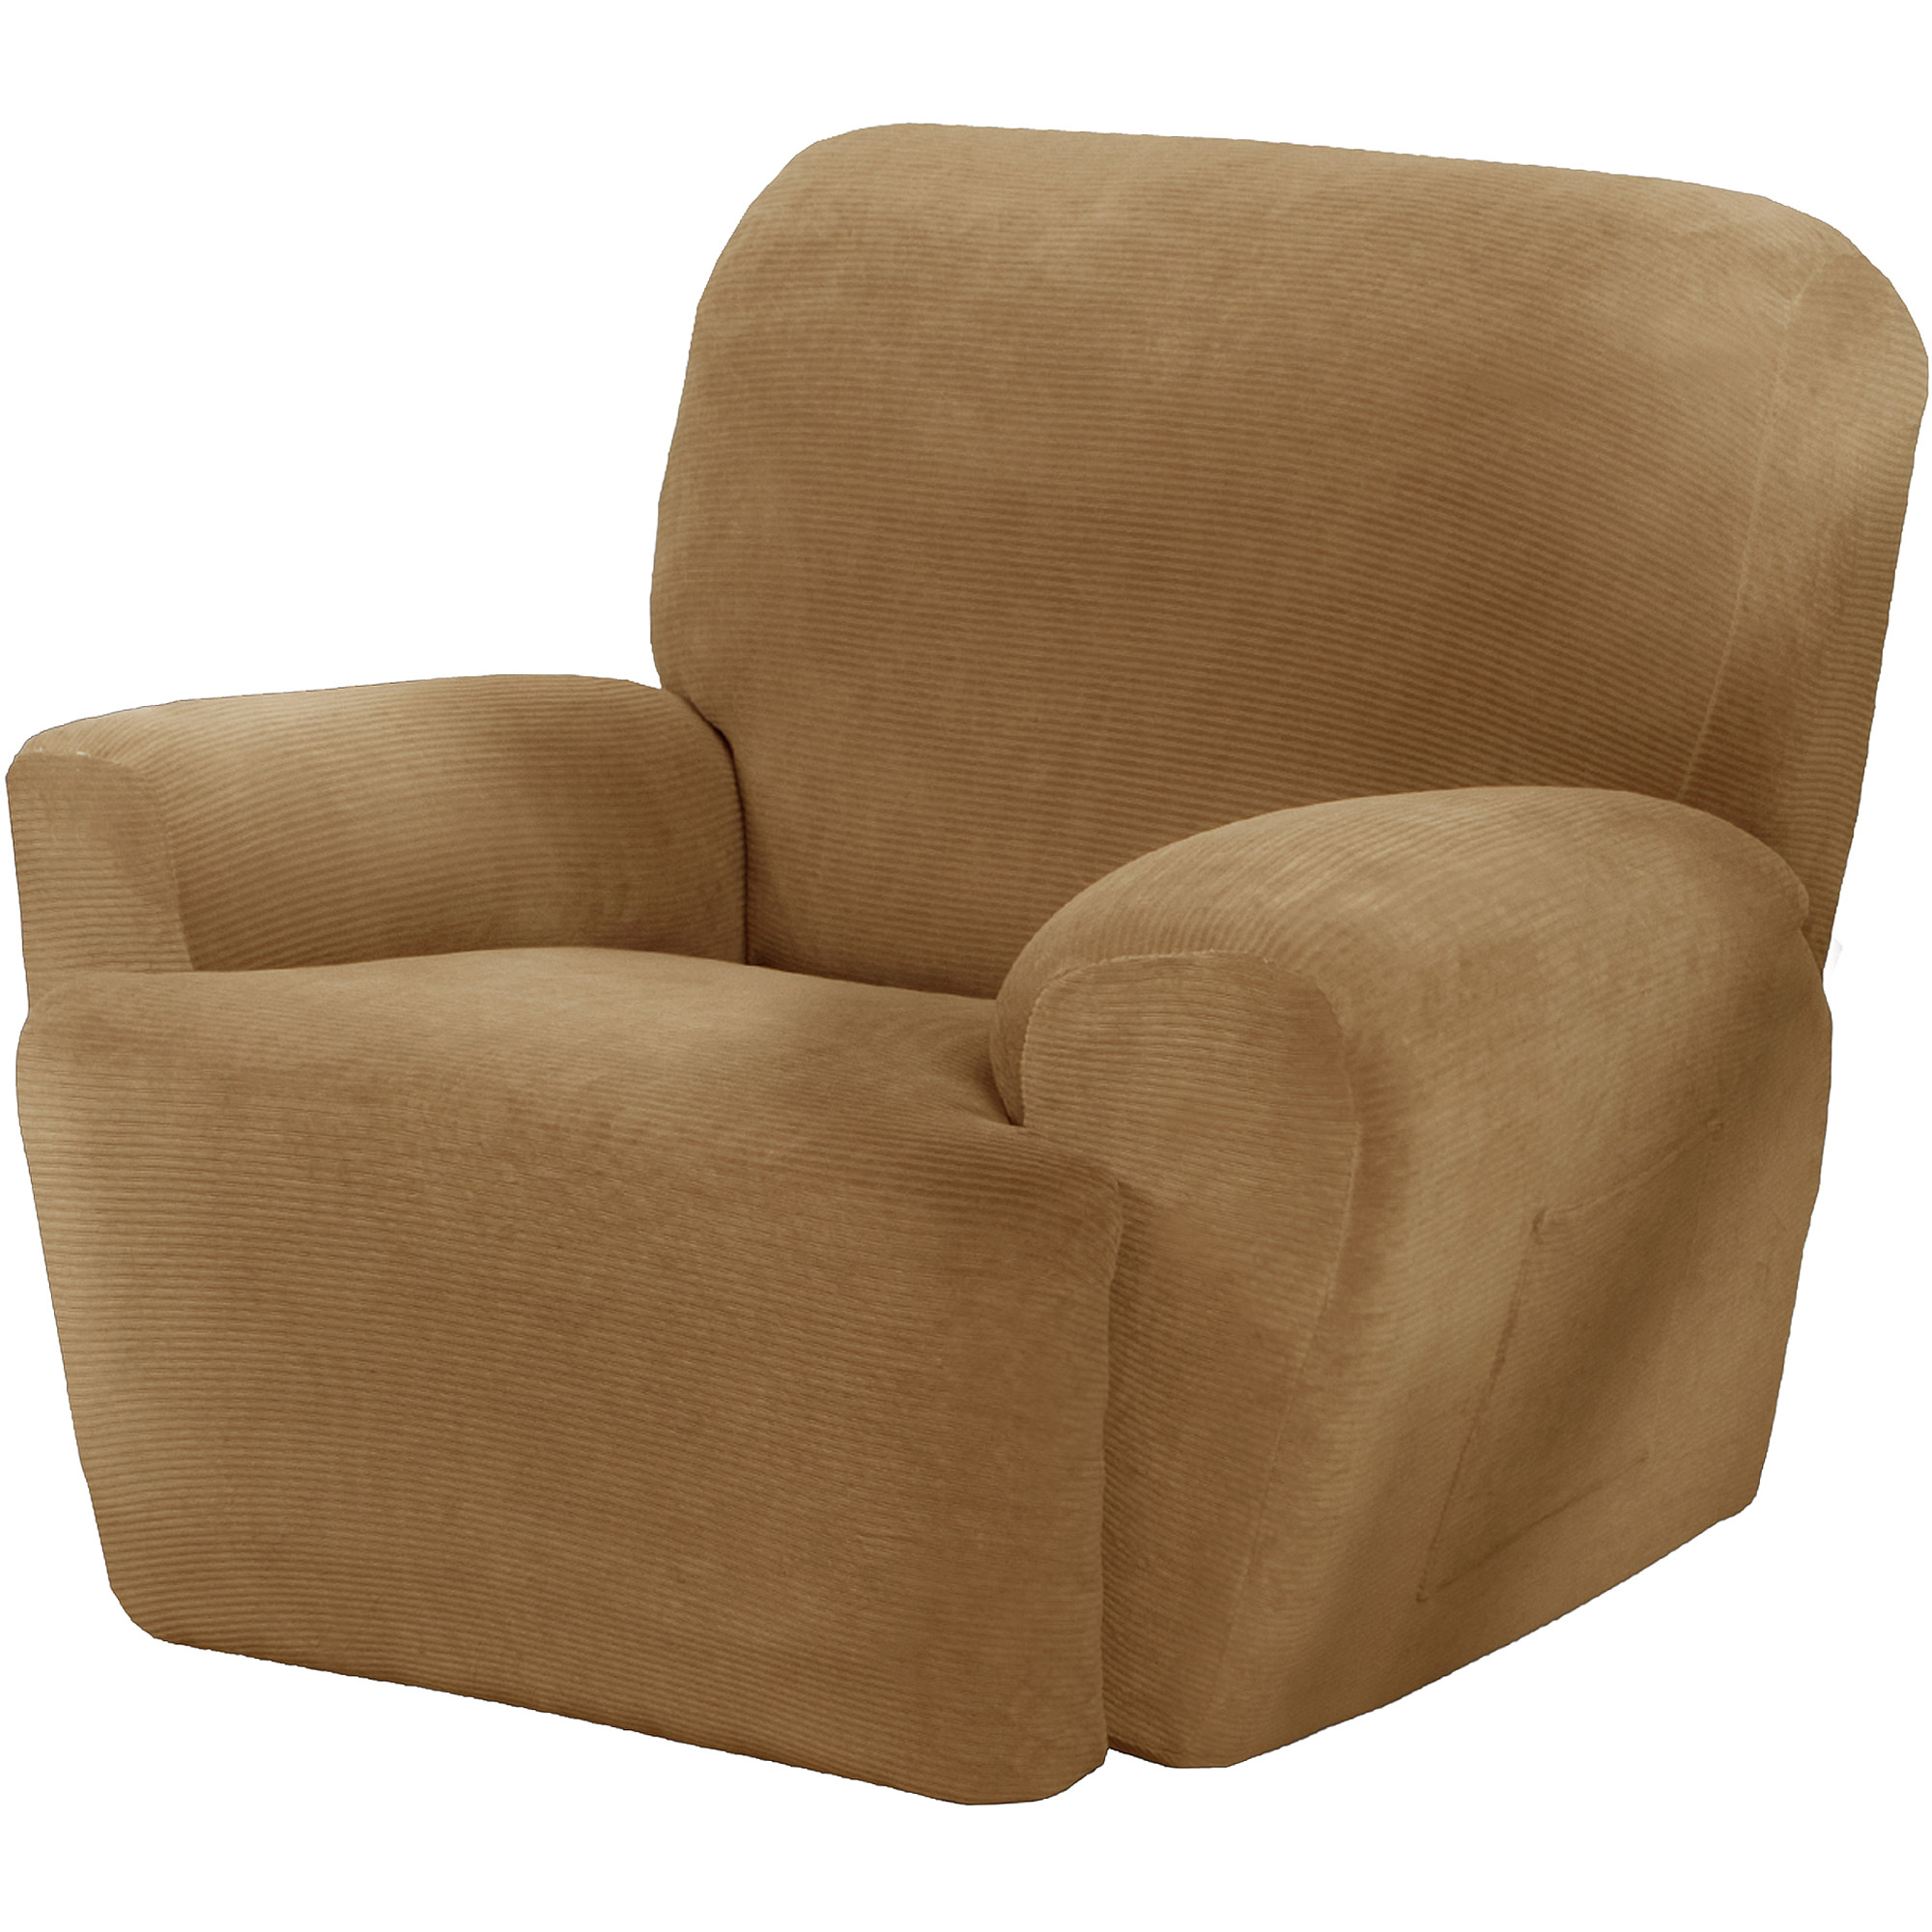 Maytex Stretch Collin 4 Piece Recliner Armchair Furniture Cover Slipcover with Side Pocket, Gold